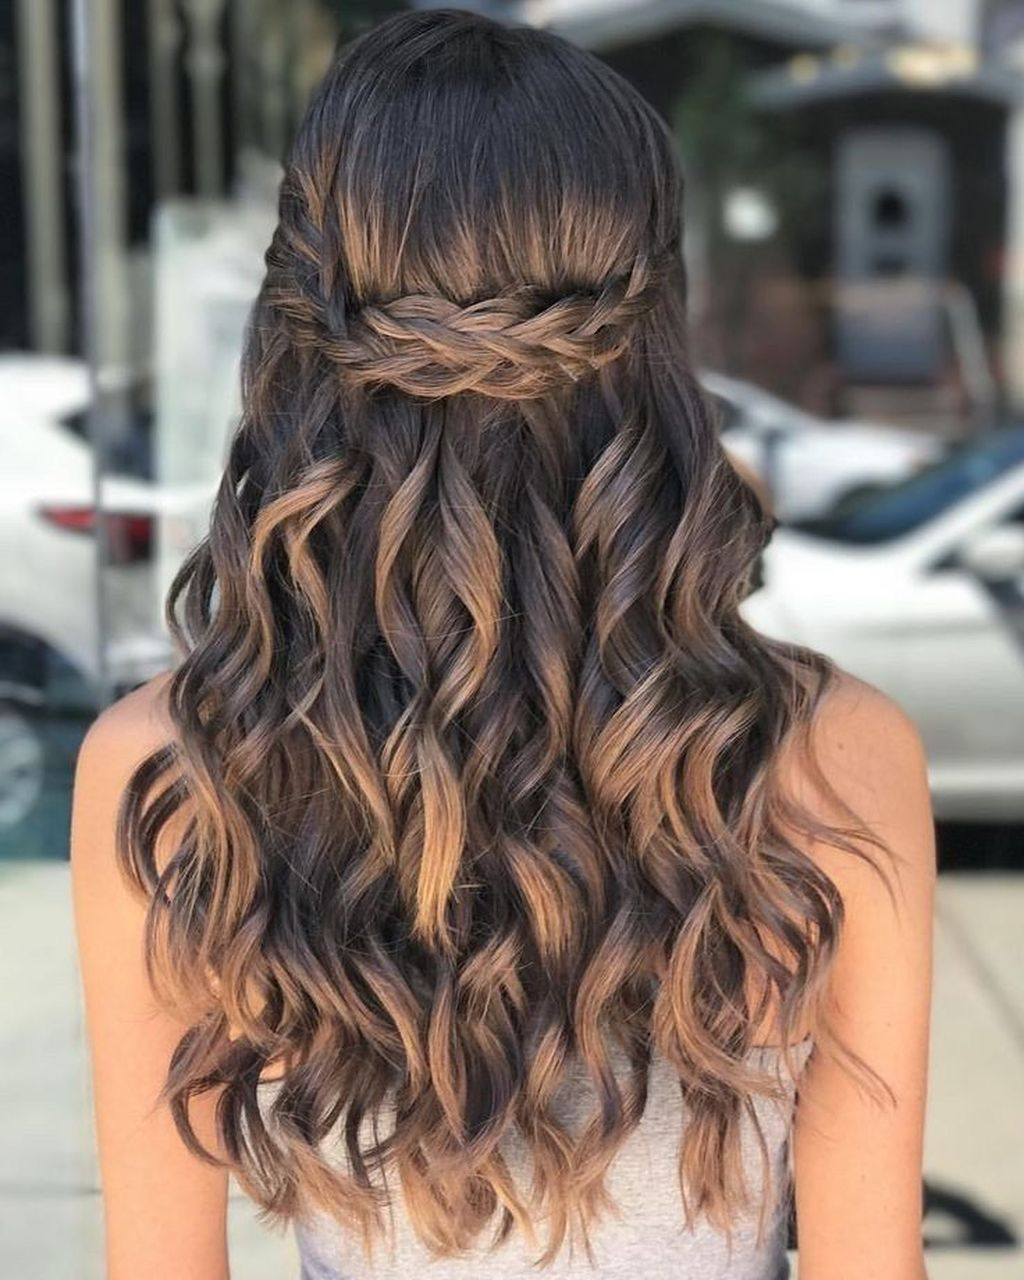 40 Pretty Prom Hairstyle Ideas For Curly Long Hair –   – #curly #Hair #hairstyle…